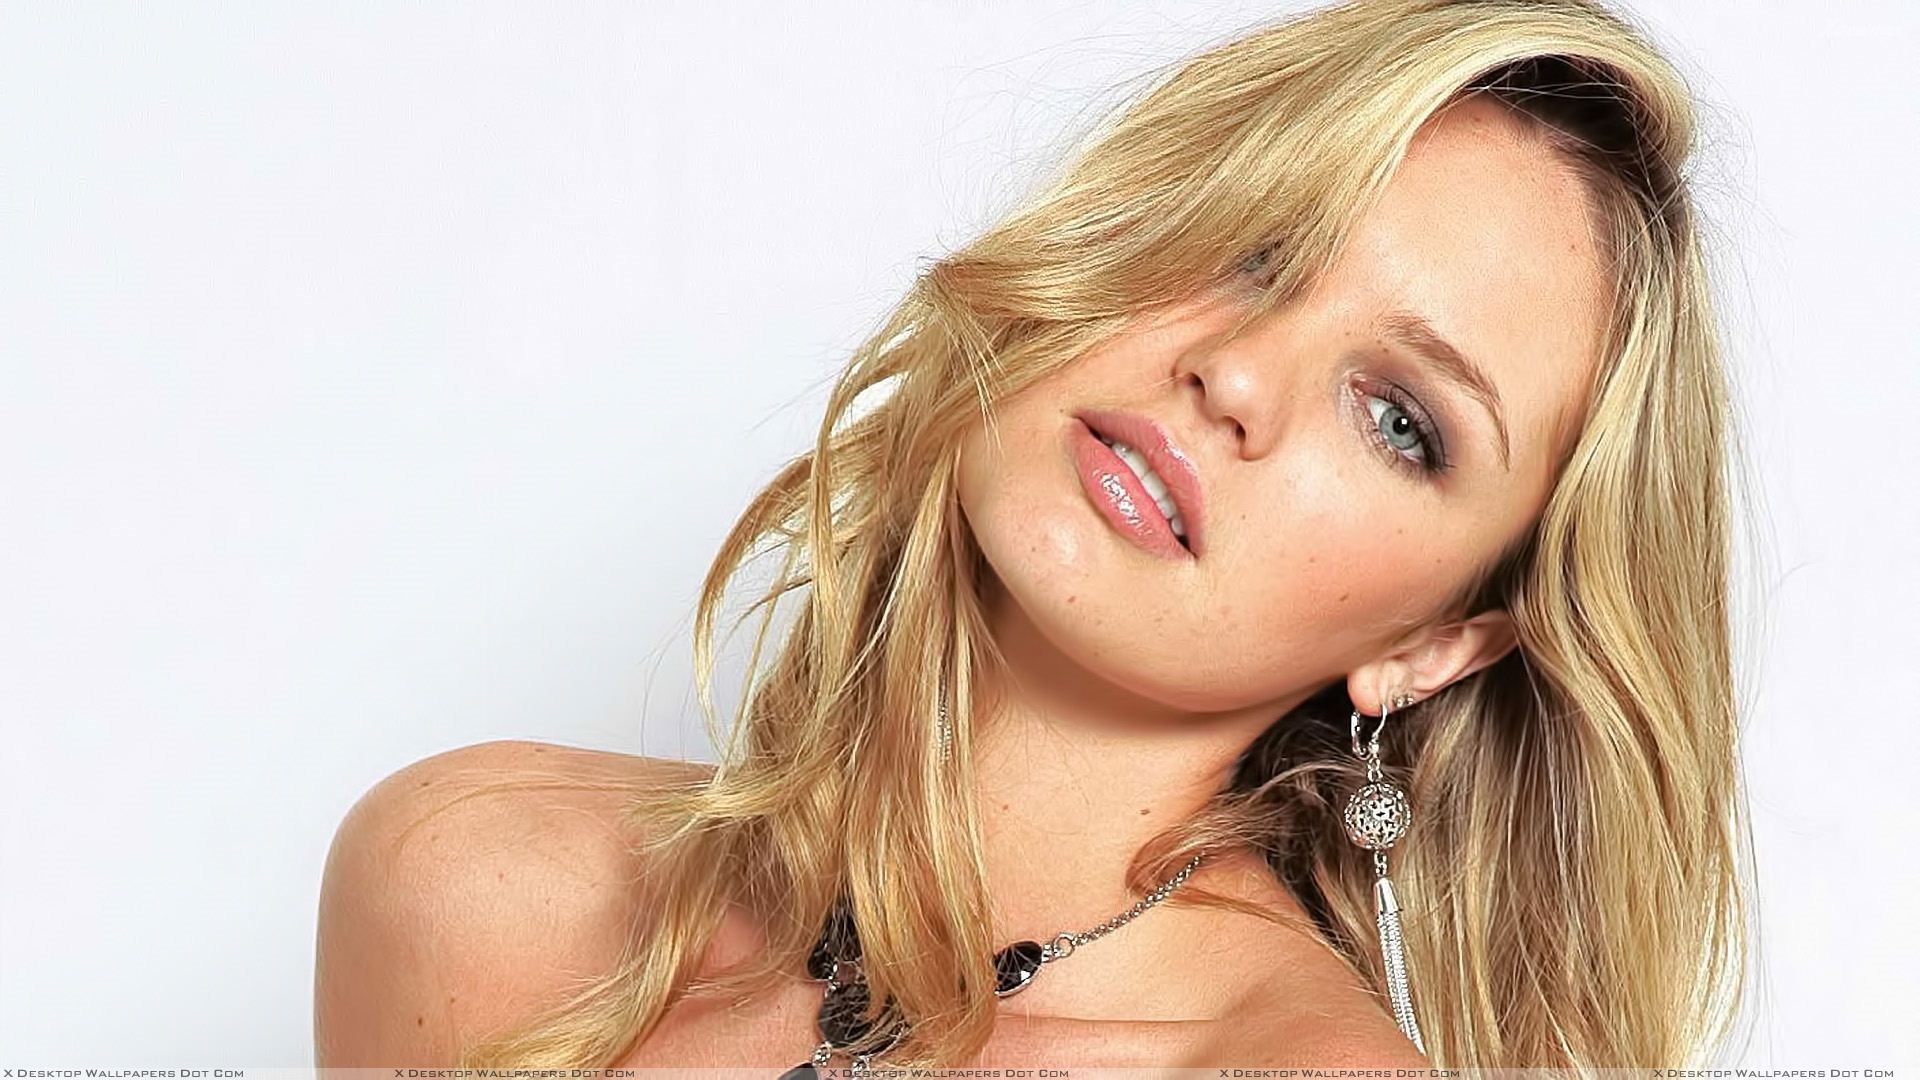 Candice Swanepoel Wallpapers Images Photos Pictures Backgrounds